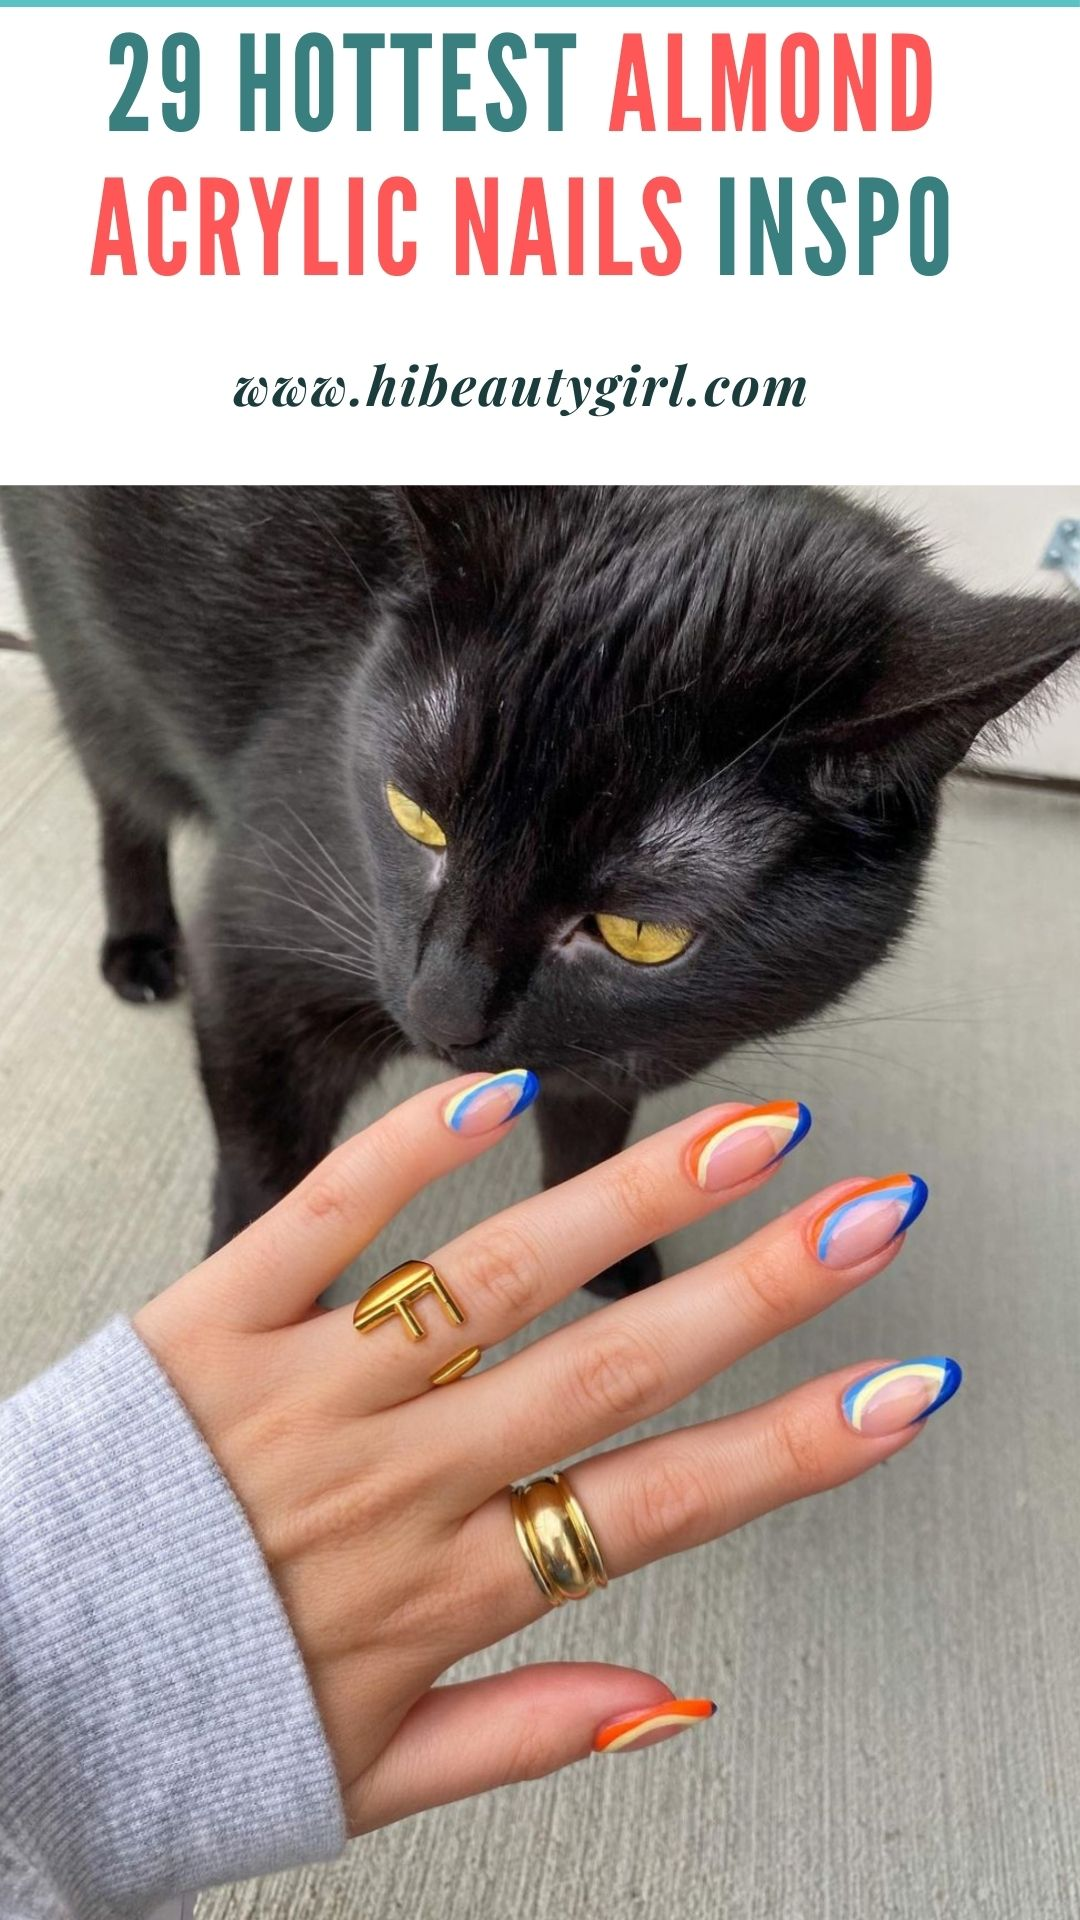 short almond acrylic nails for summer and fall nails